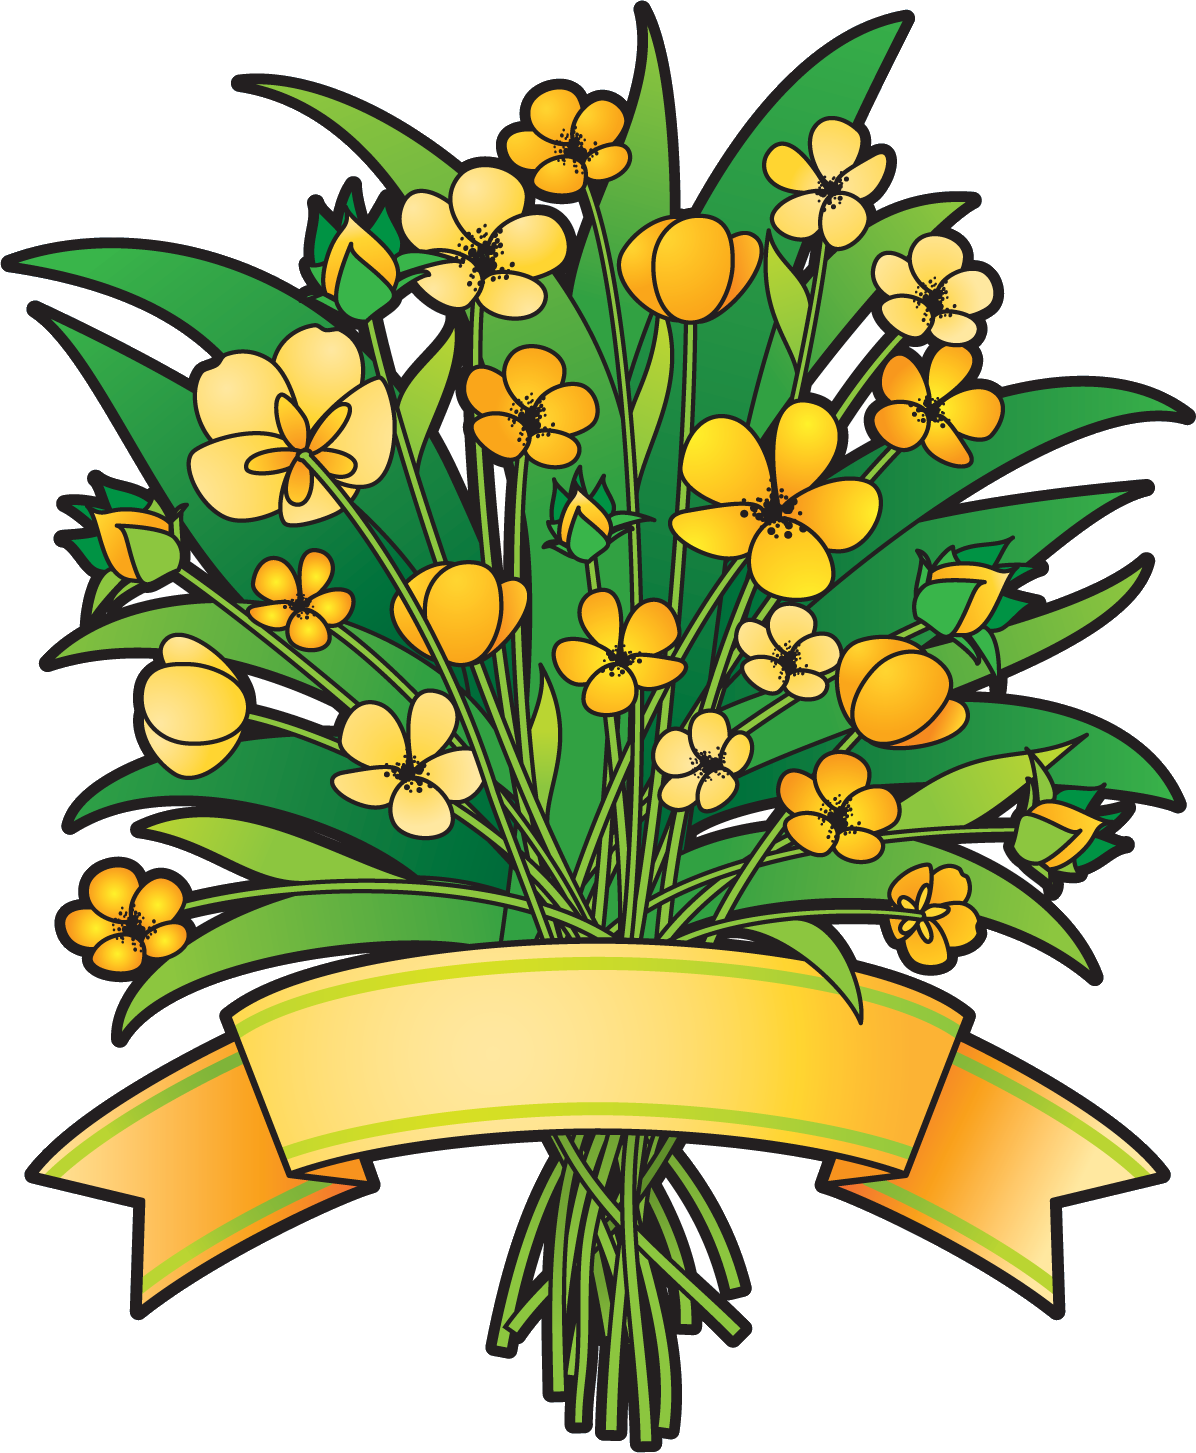 Transparent grave flower clipart. Bouquet of flowers image